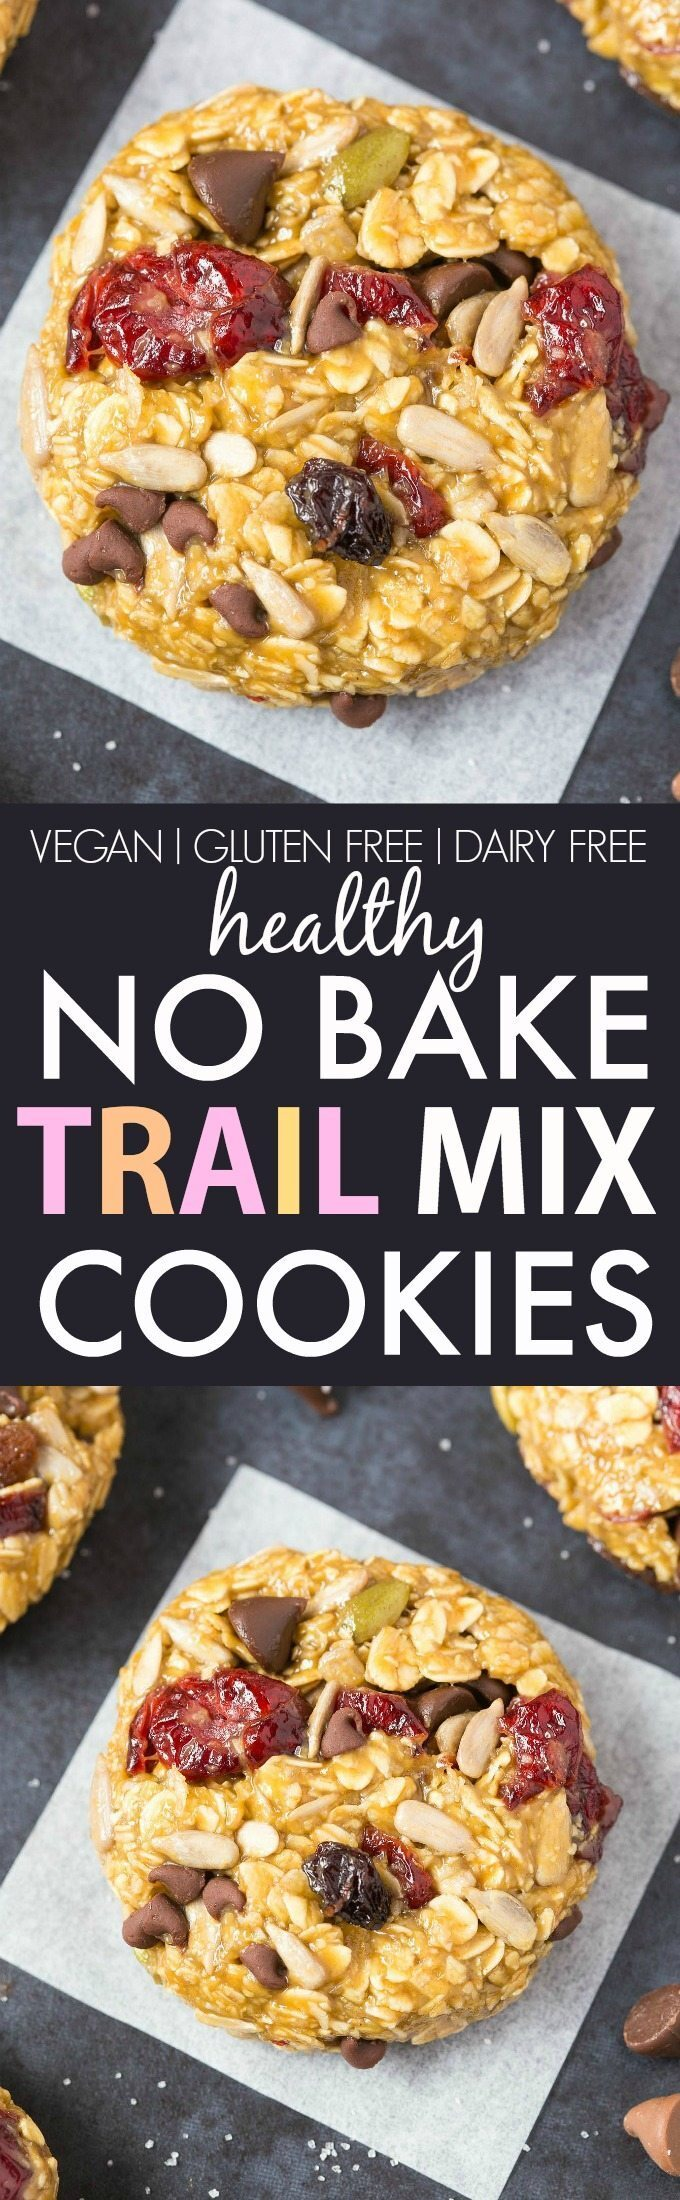 Healthy No Bake Trail Mix Cookies (Vegan, Gluten Free, Sugar Free)